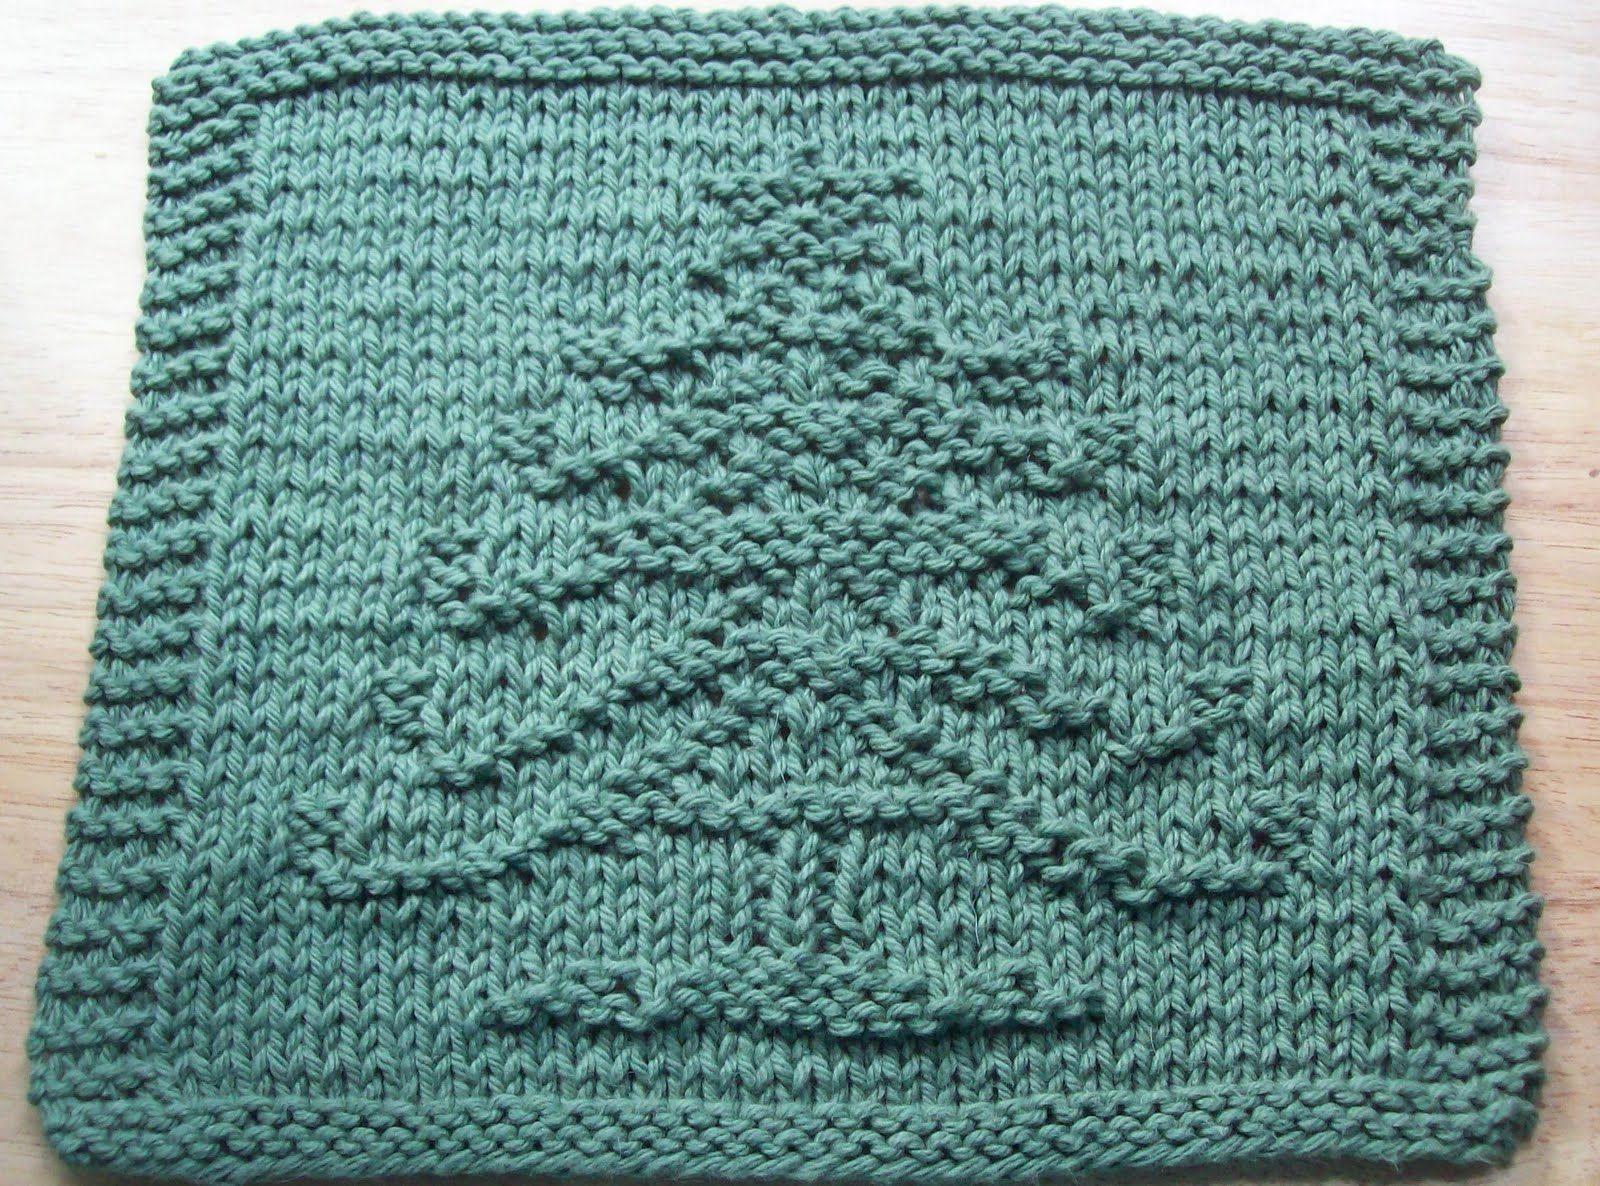 DigKnitty Designs: Another Christmas Tree Knit Dishcloth Pattern ...